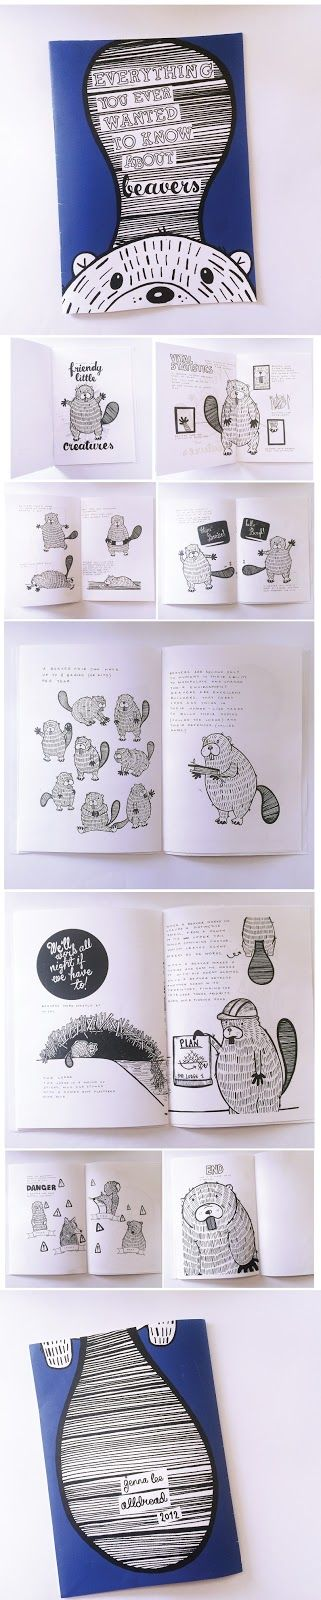 Everything You Ever Wanted to Know about Beavers - illustrated zine by Jenna Lee Alldread